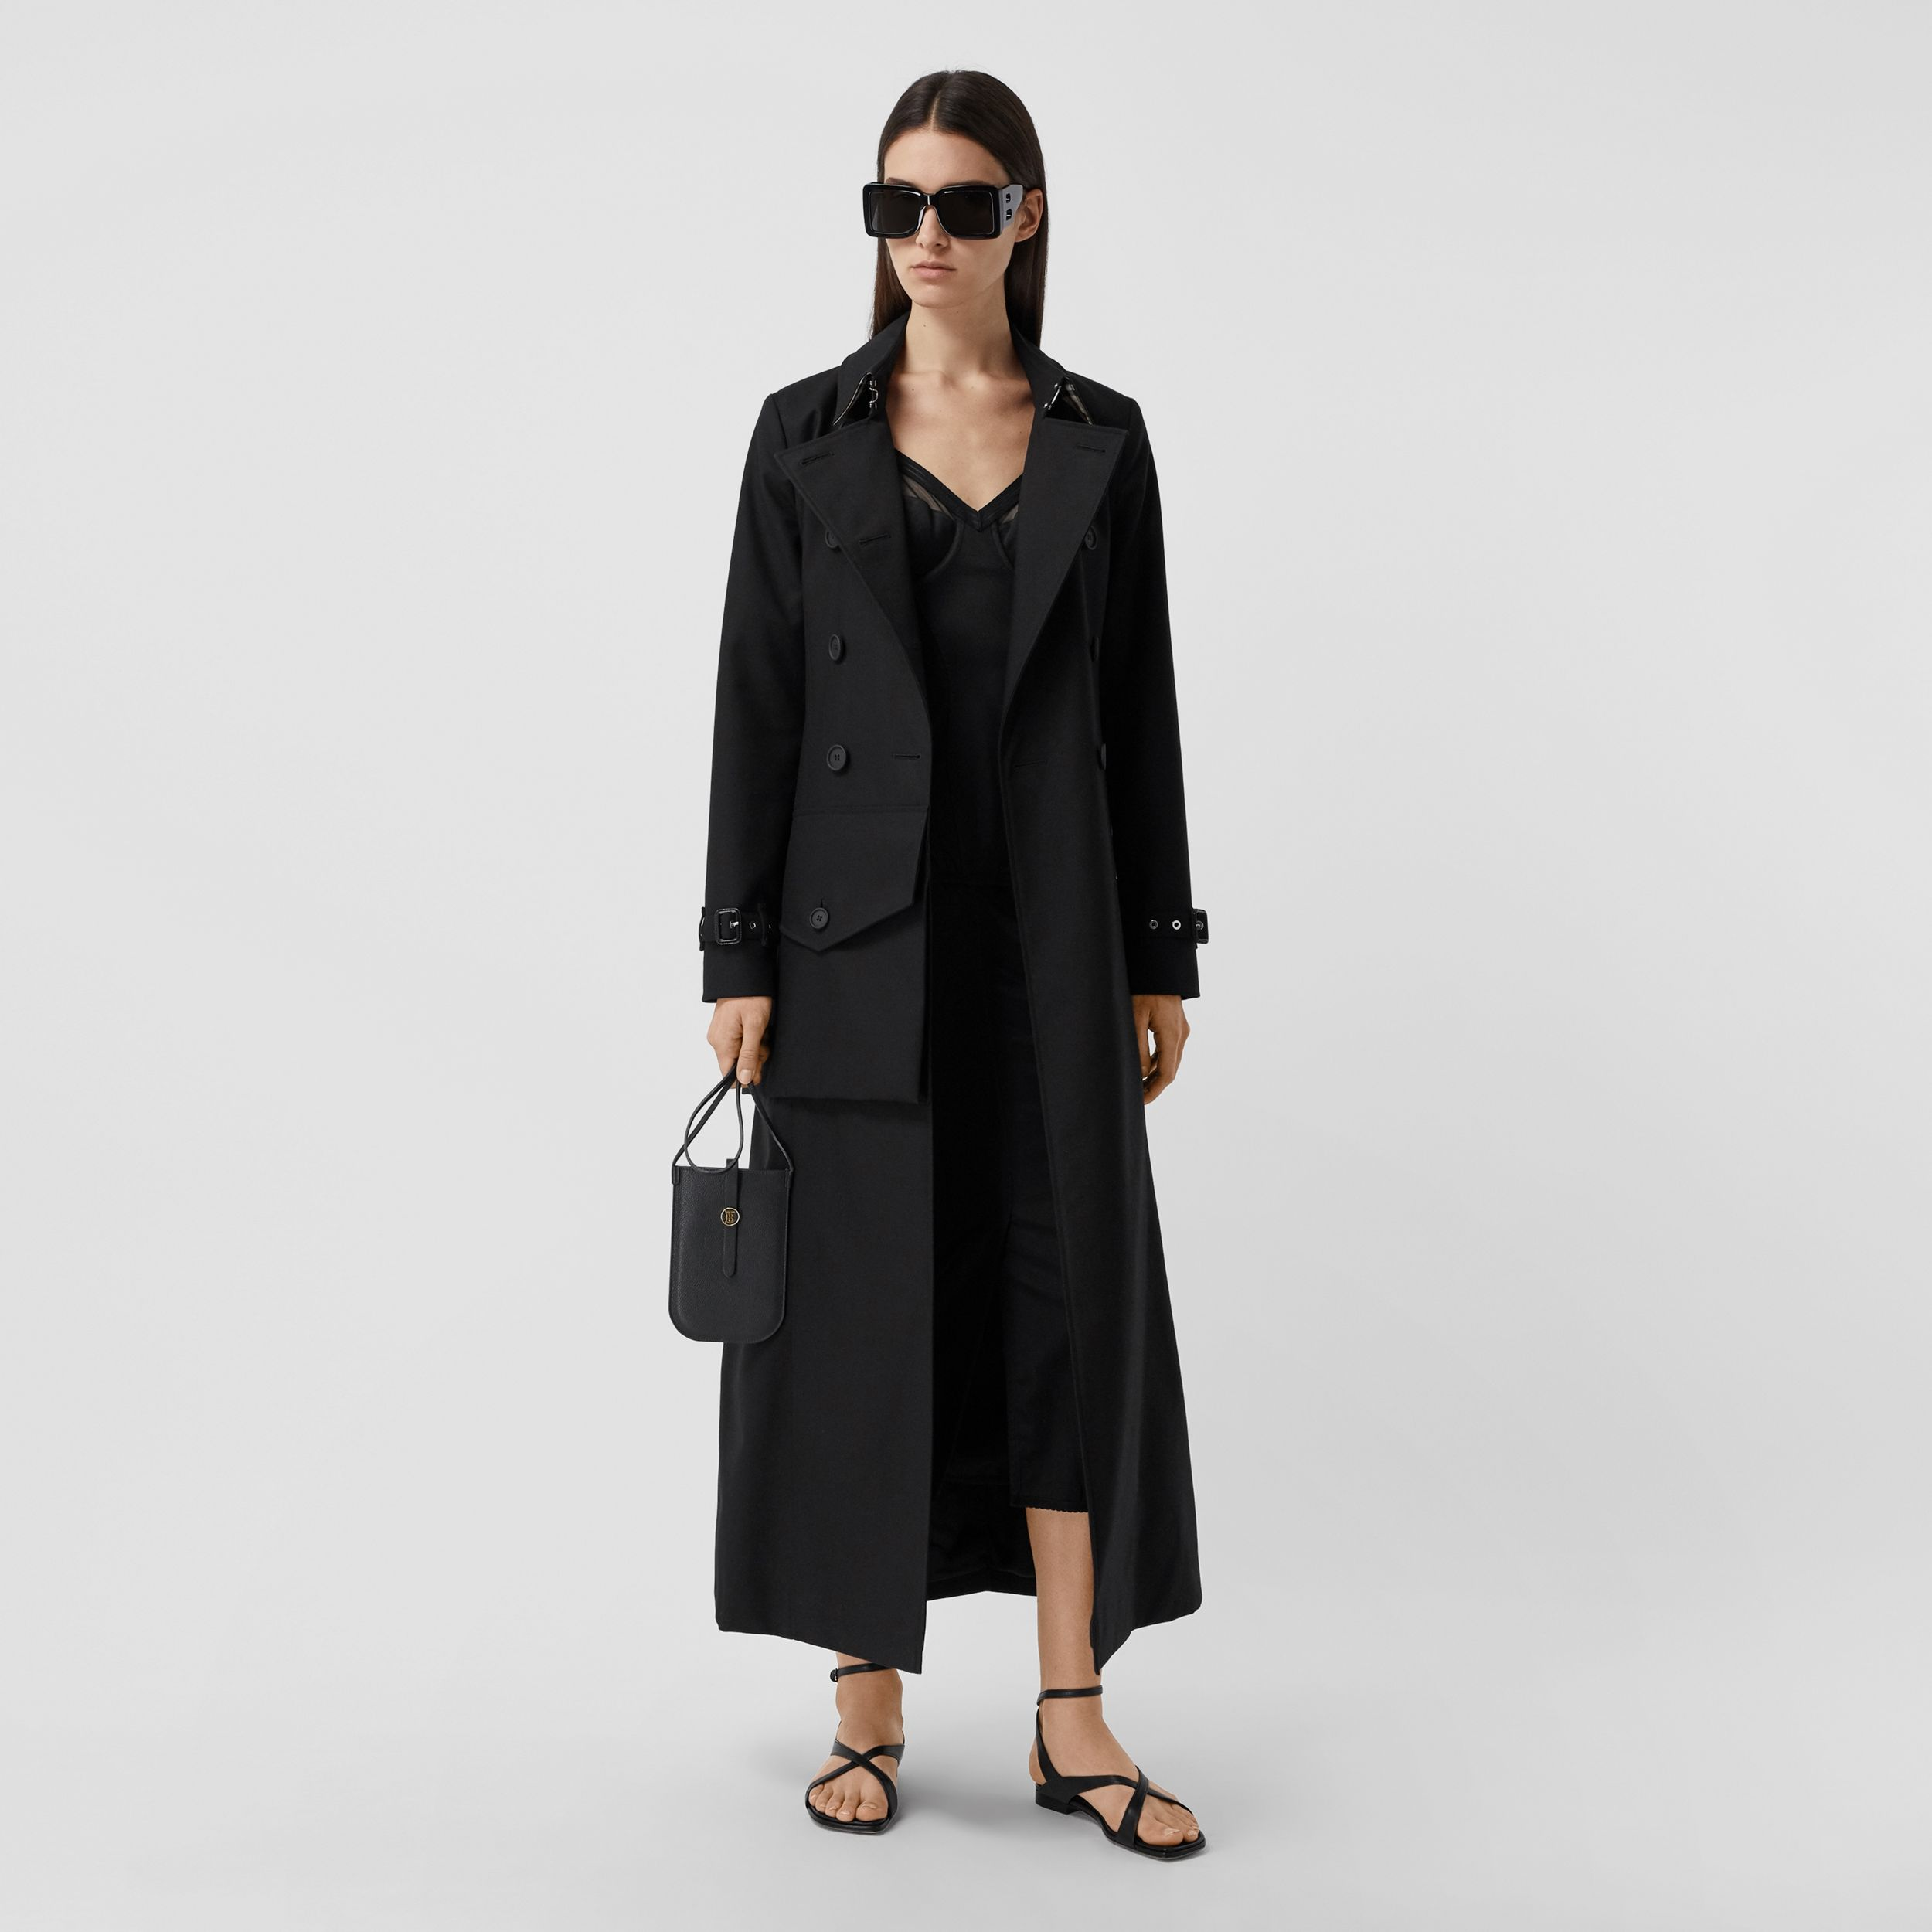 Pocket Detail Cotton Gabardine Trench Coat in Black - Women | Burberry - 1